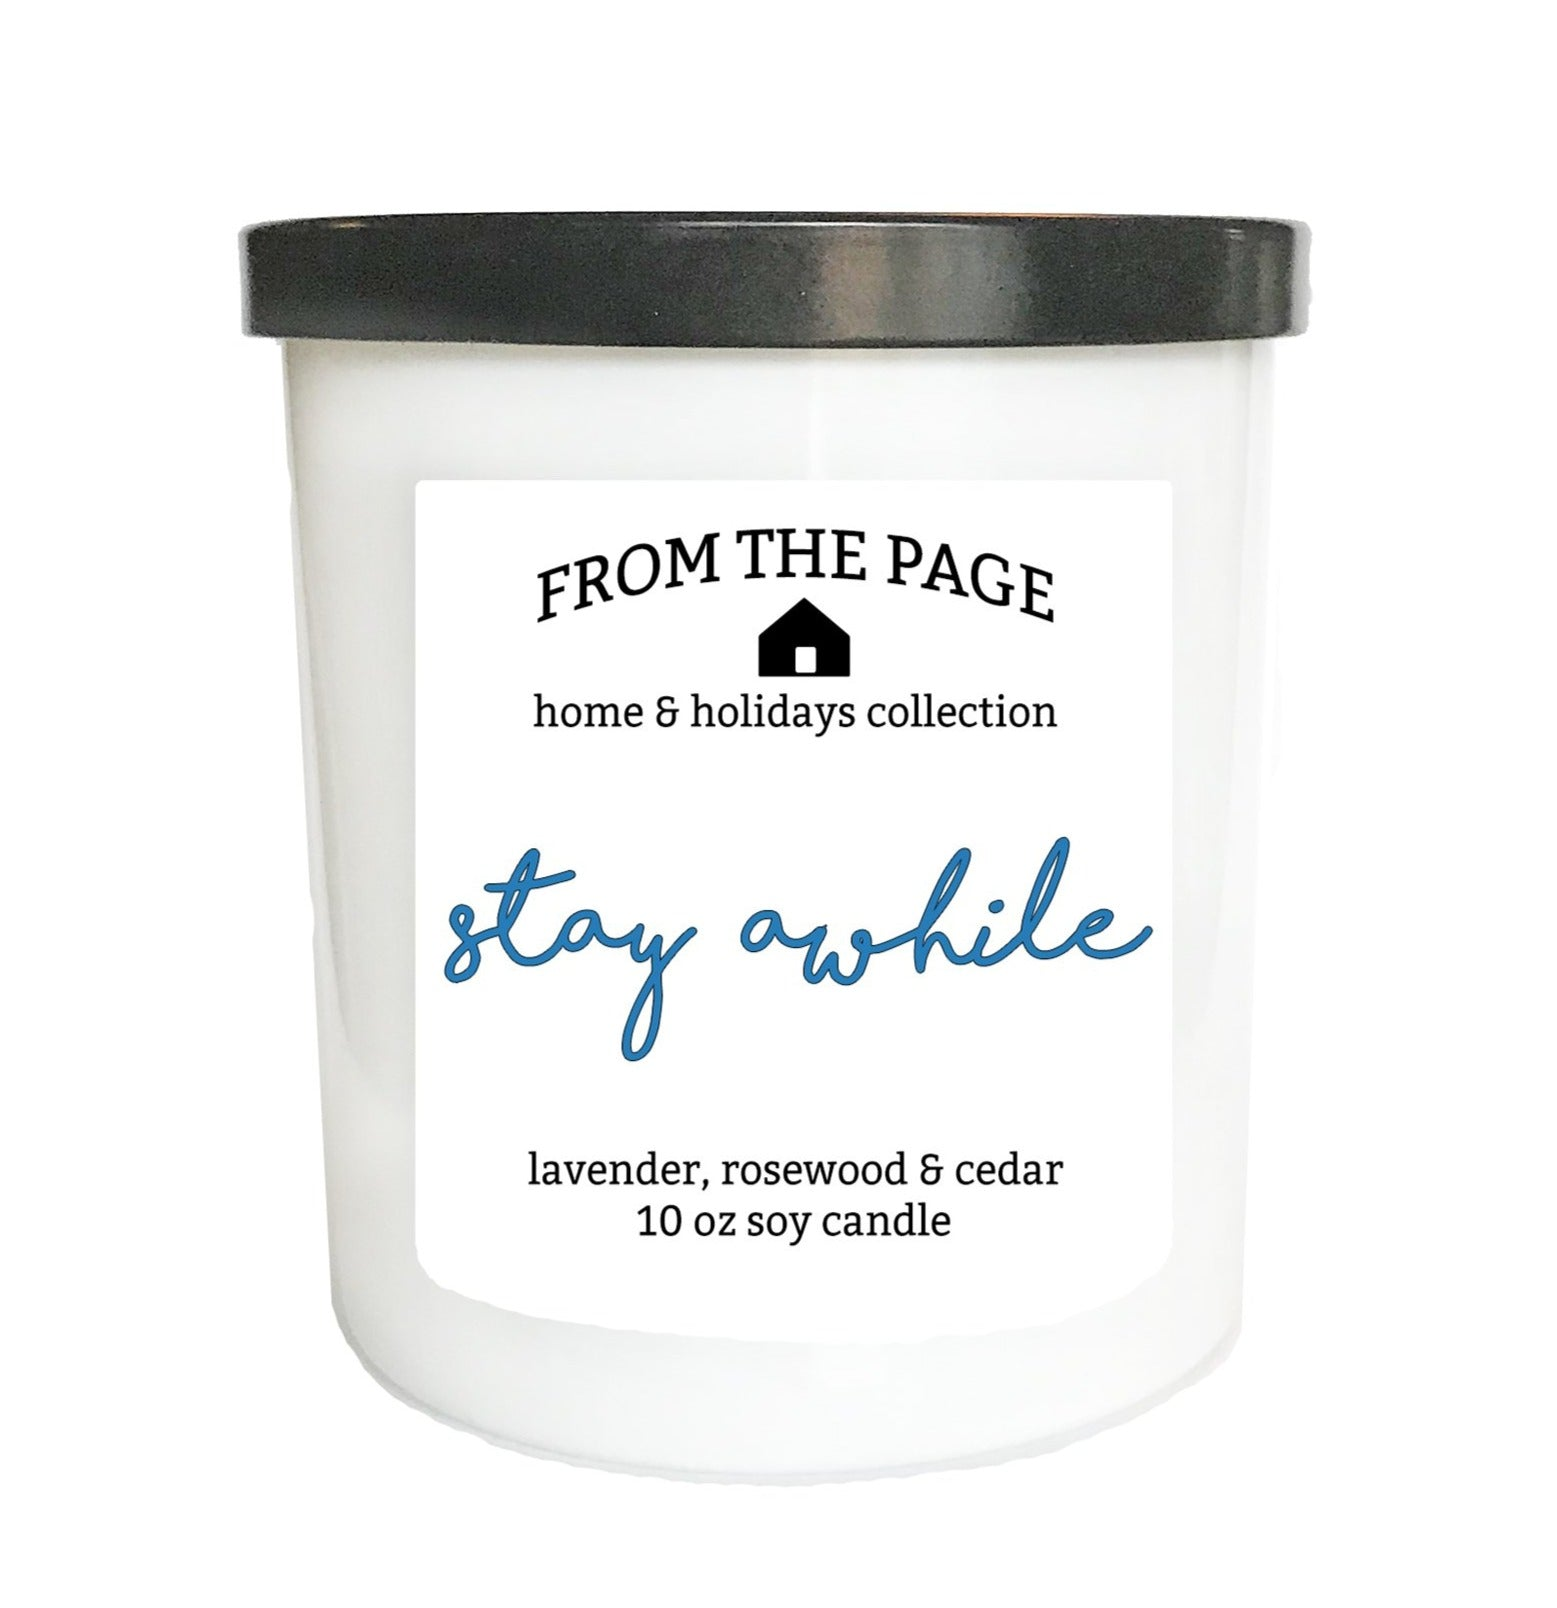 Stay Awhile 10 oz candle